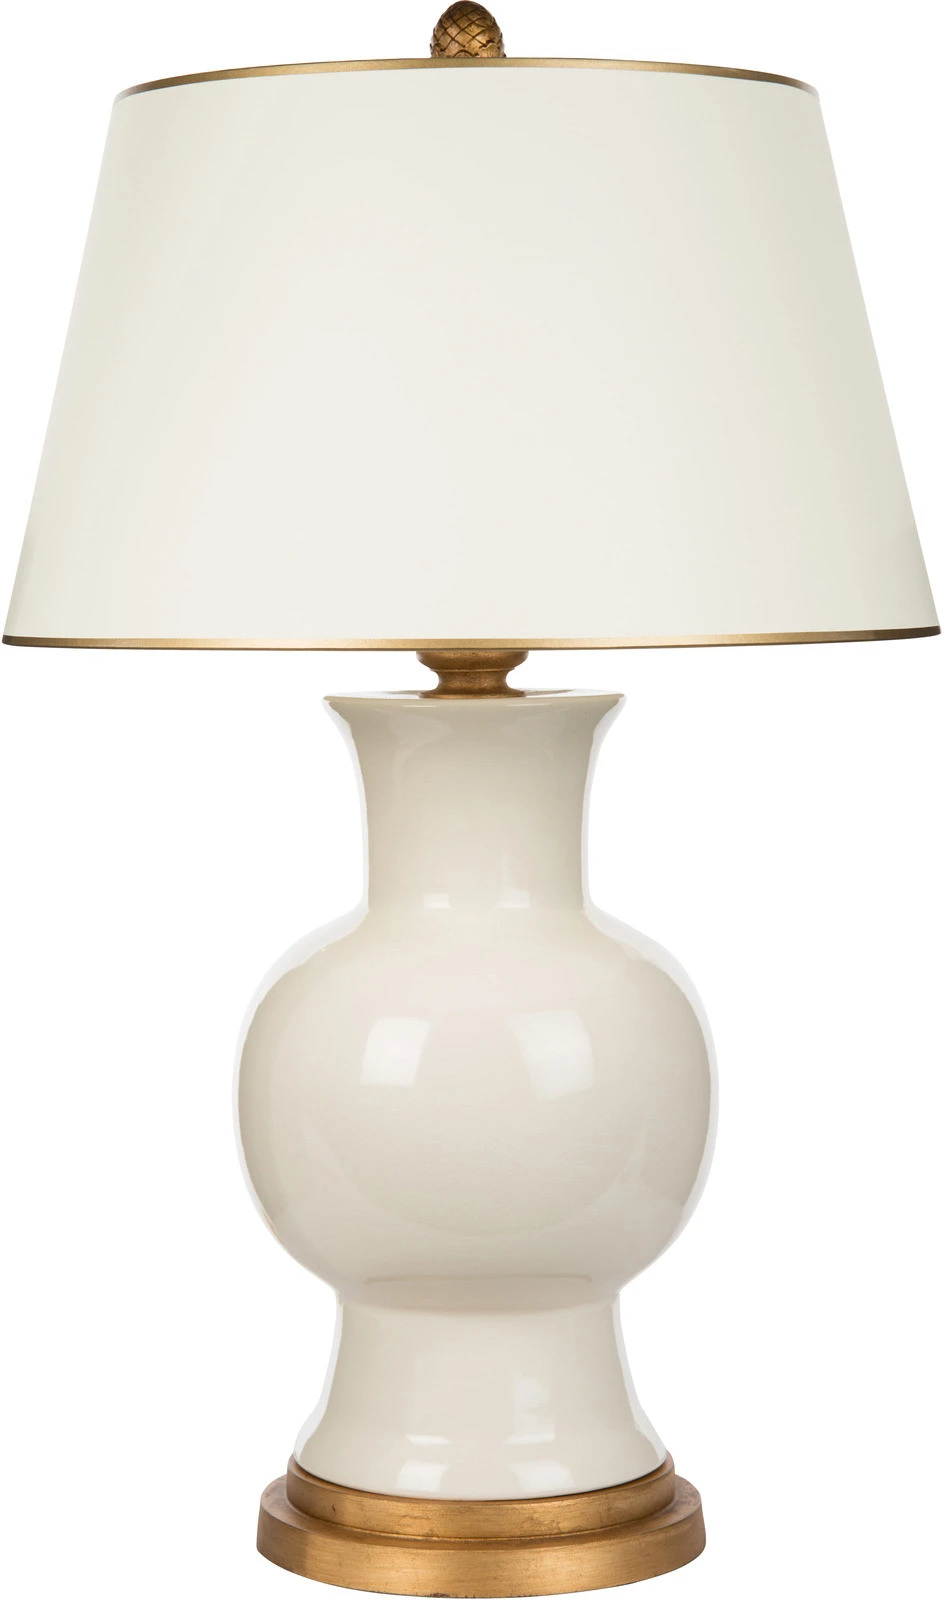 Bradburn Gallery Juliette White Table Lamp